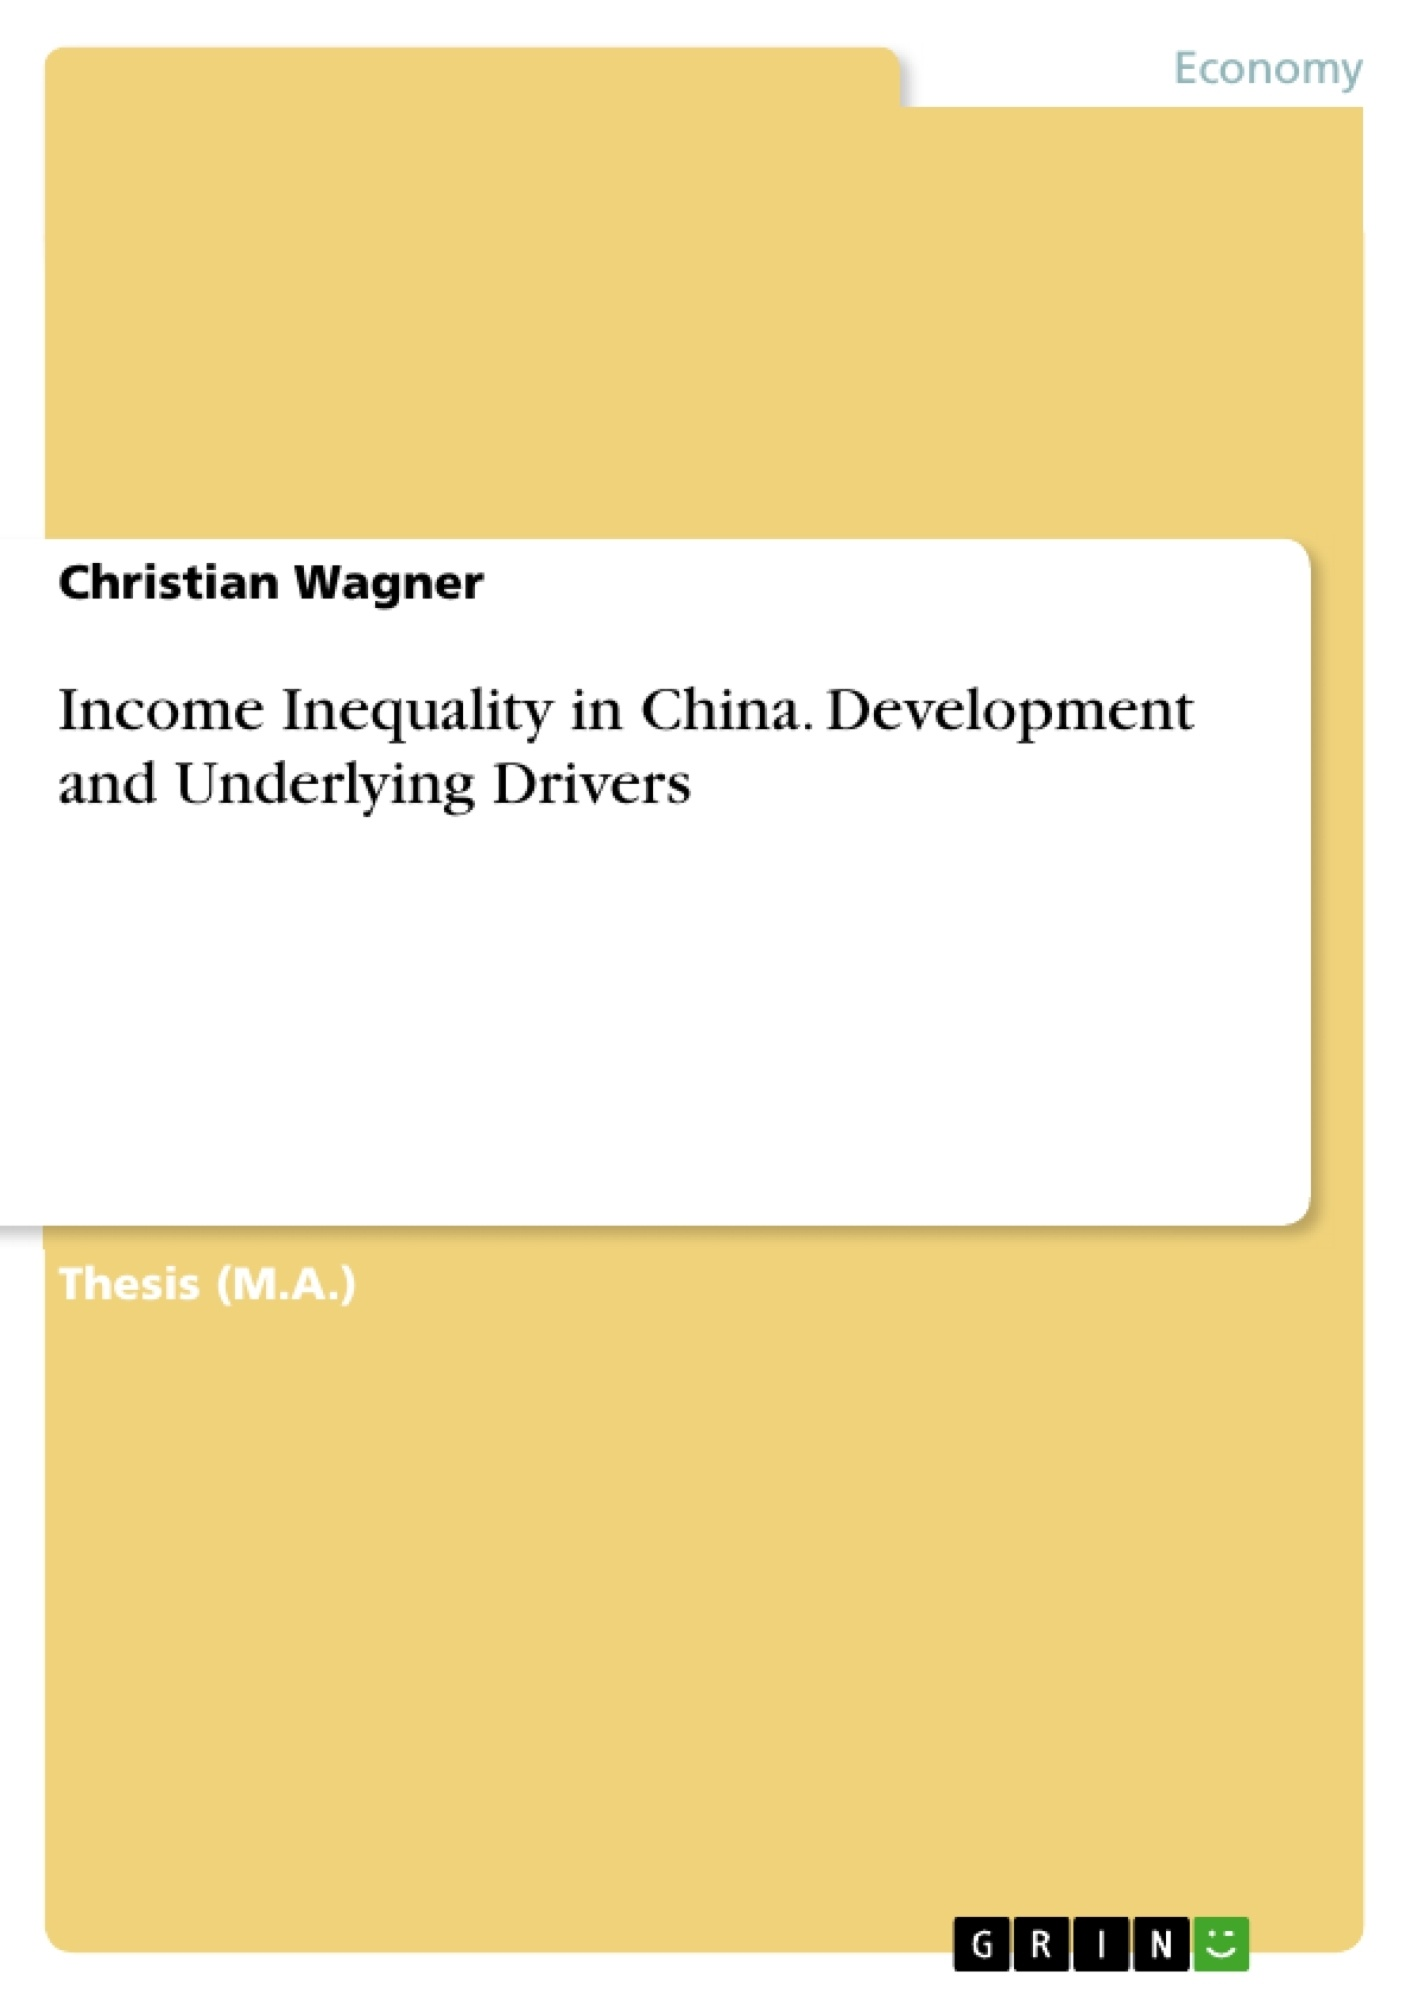 Title: Income Inequality in China. Development and Underlying Drivers